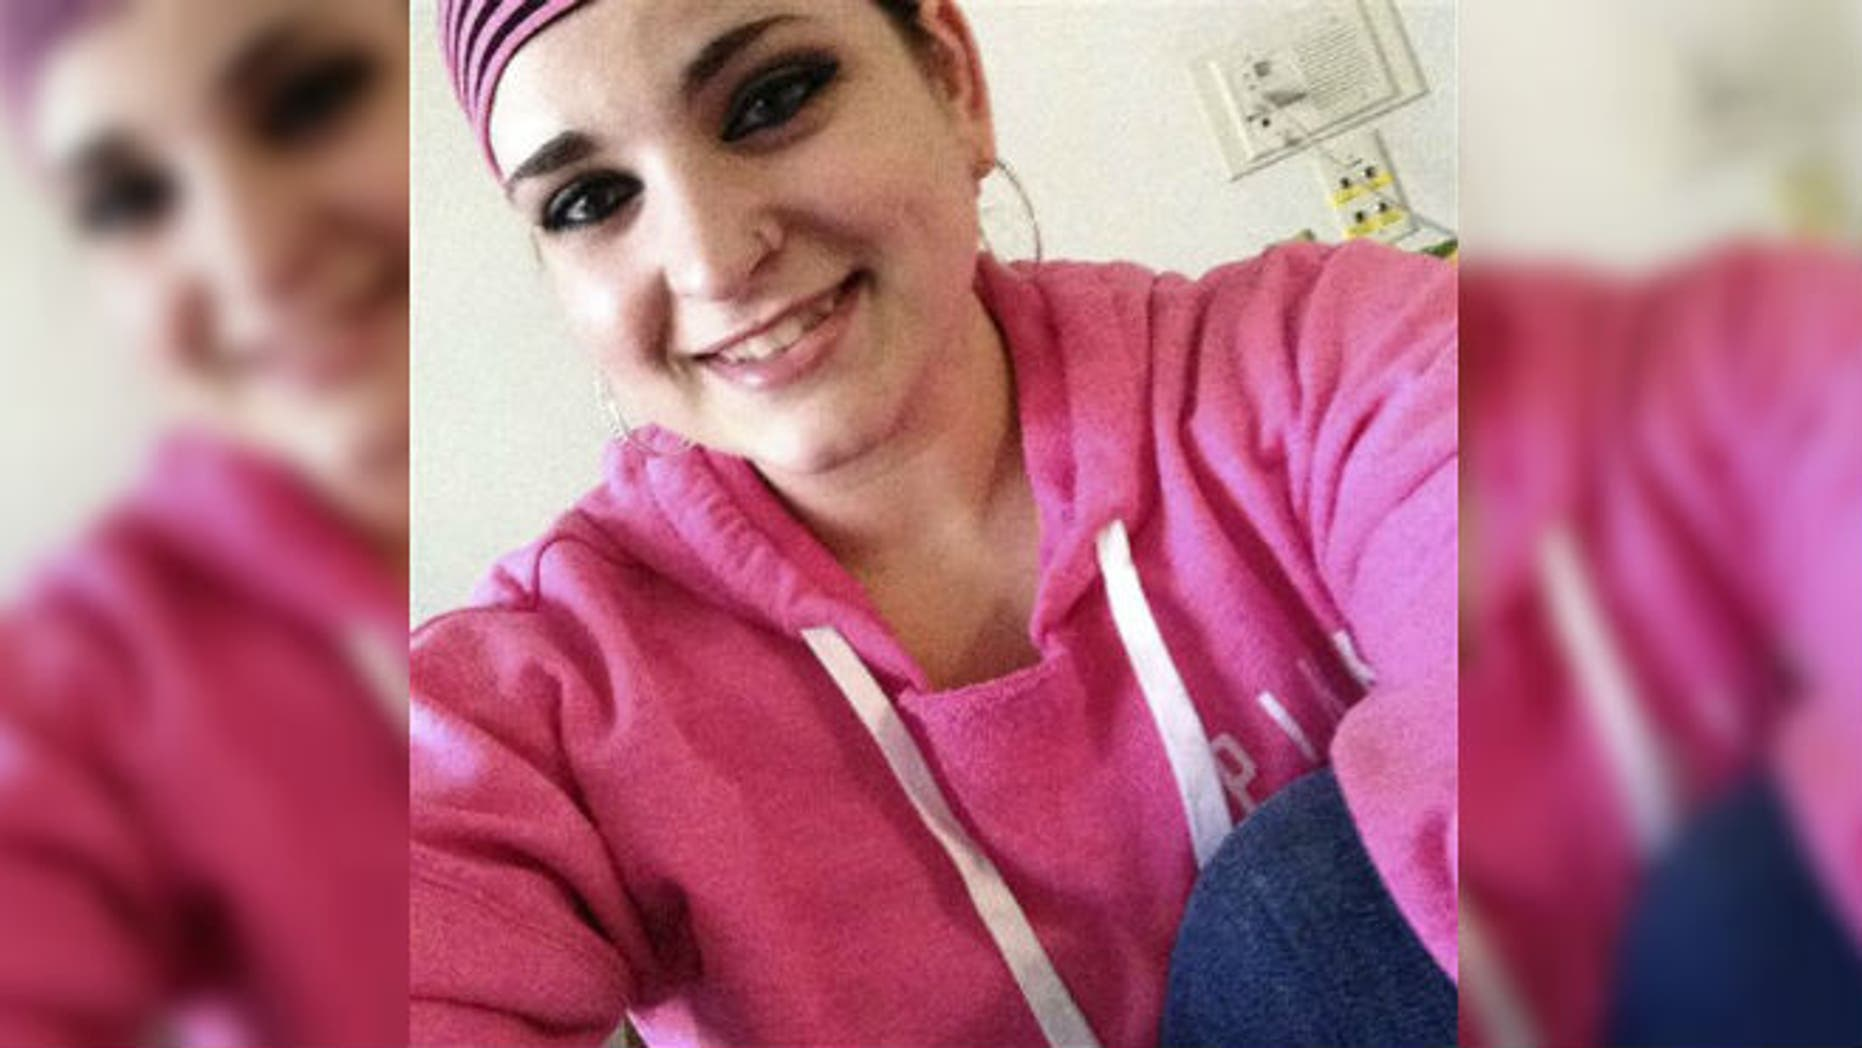 This January 2015 file photo provided by Cassandra C., shows Cassandra, a teen who does not want to give her last name, confined in a room at Connecticut Children's Medical Center in Hartford, Conn., where she is being forced to undergo chemotherapy for Hodgkin lymphoma. (AP Photo/Cassandra C., File)